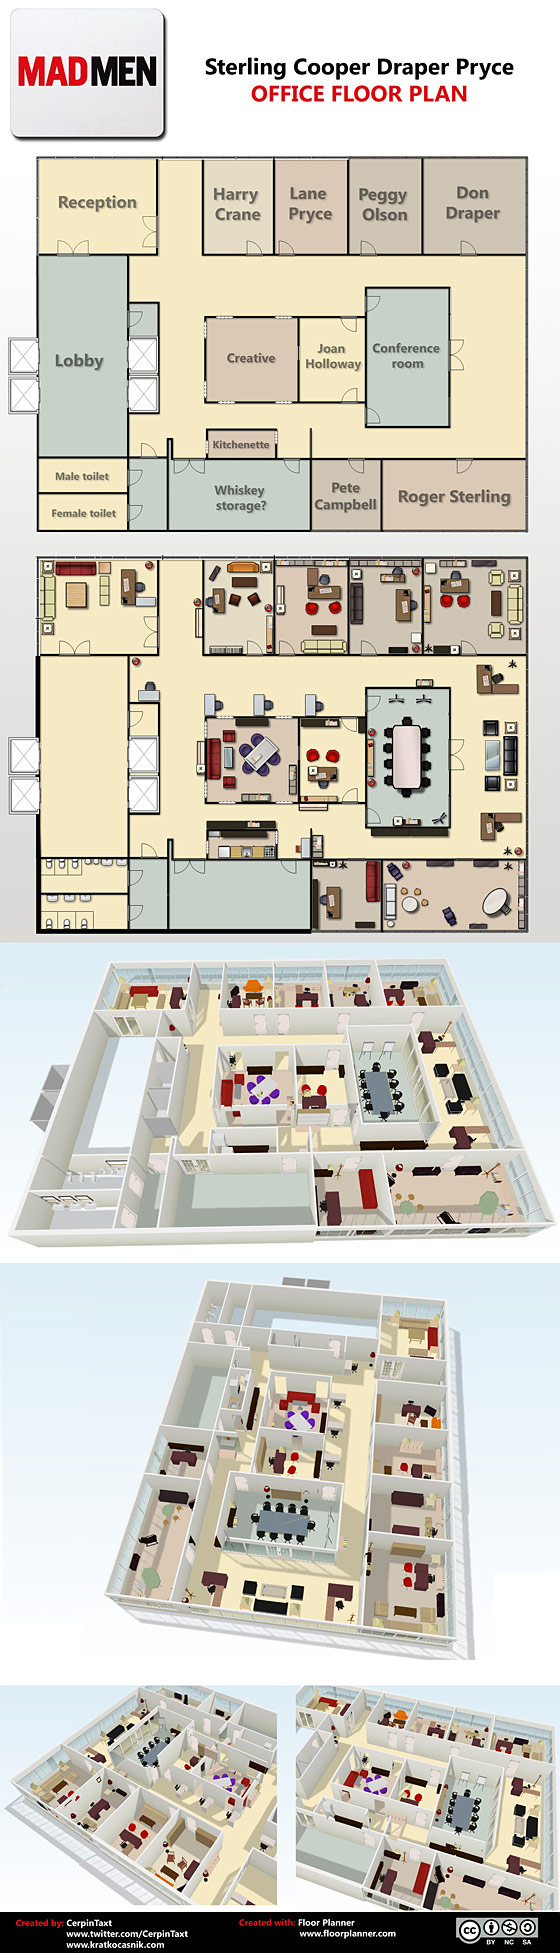 see a floor plan of the mad men office vulture